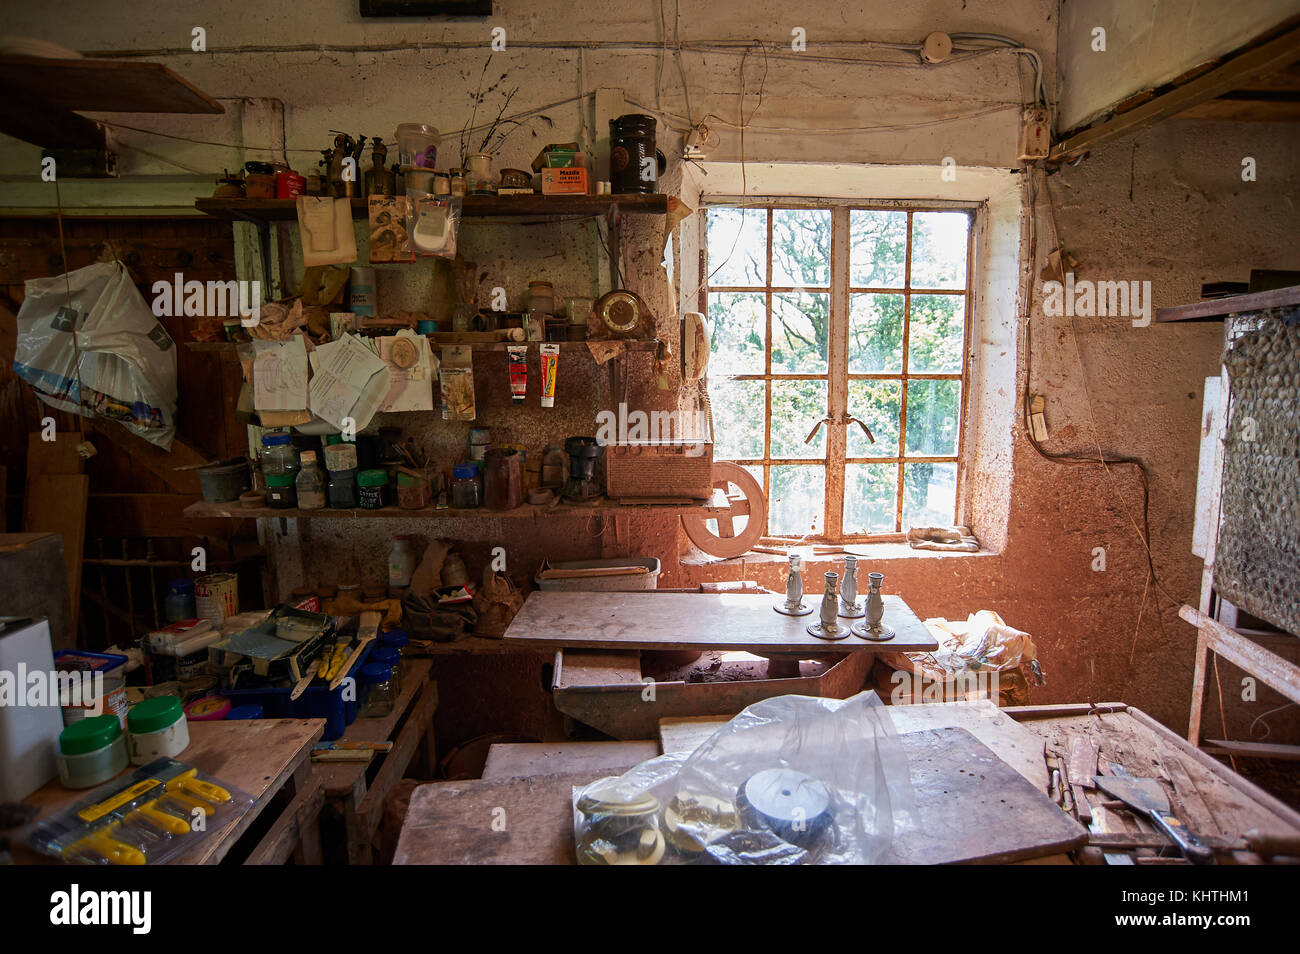 Cluttered work bench and shelving in pottery studio, Longsleddale, Kentmere, Lake District - Stock Image